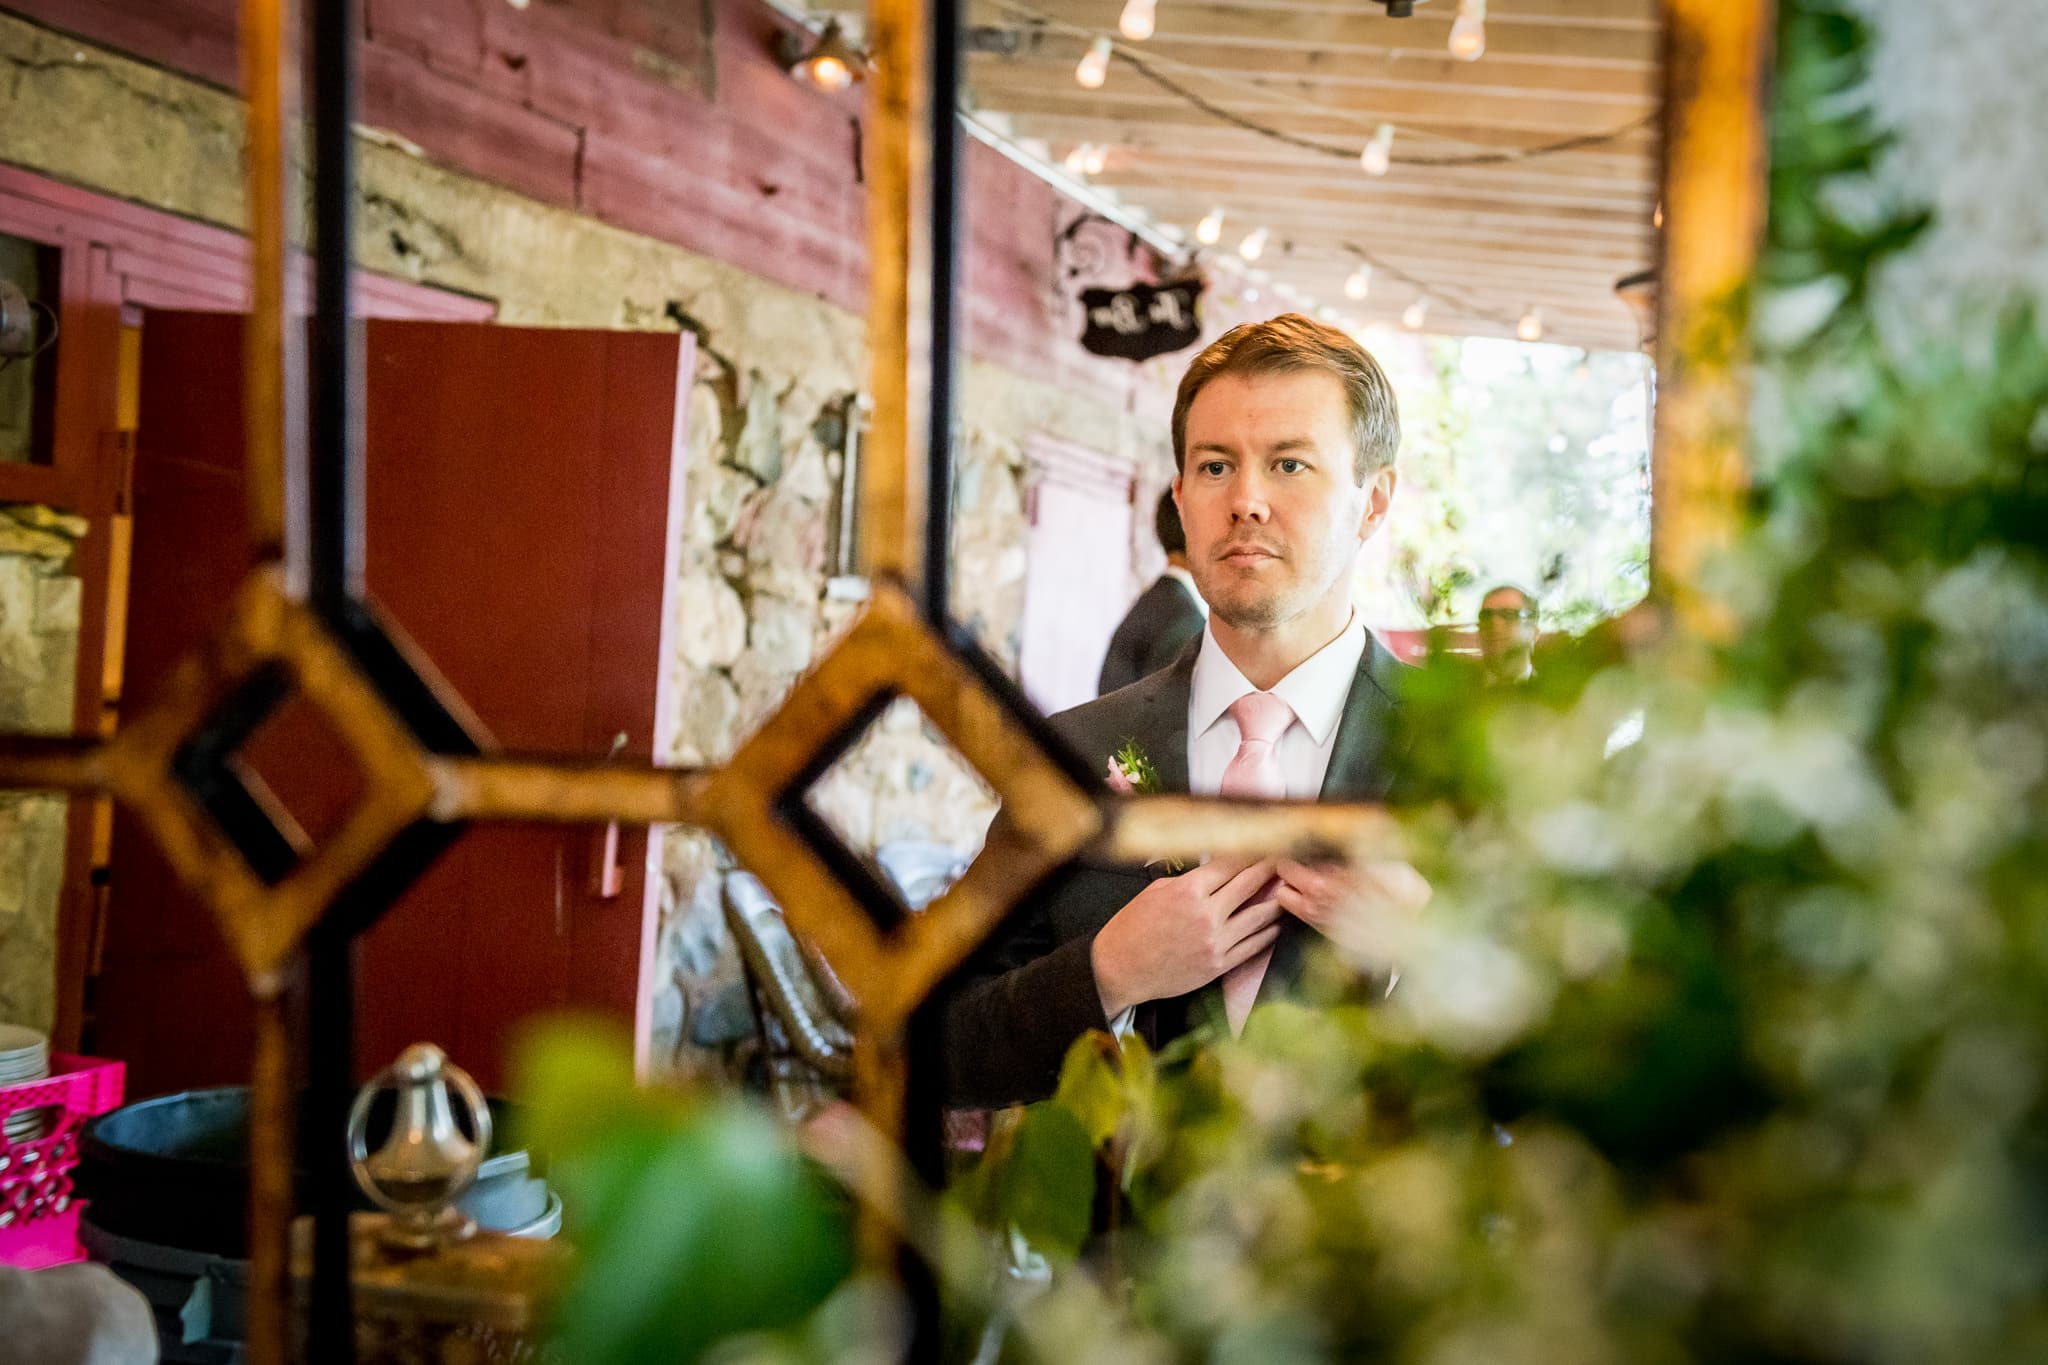 Cool mirror photo of groom getting ready in the groomsmen quarters at Camrose Hill Flower Farm